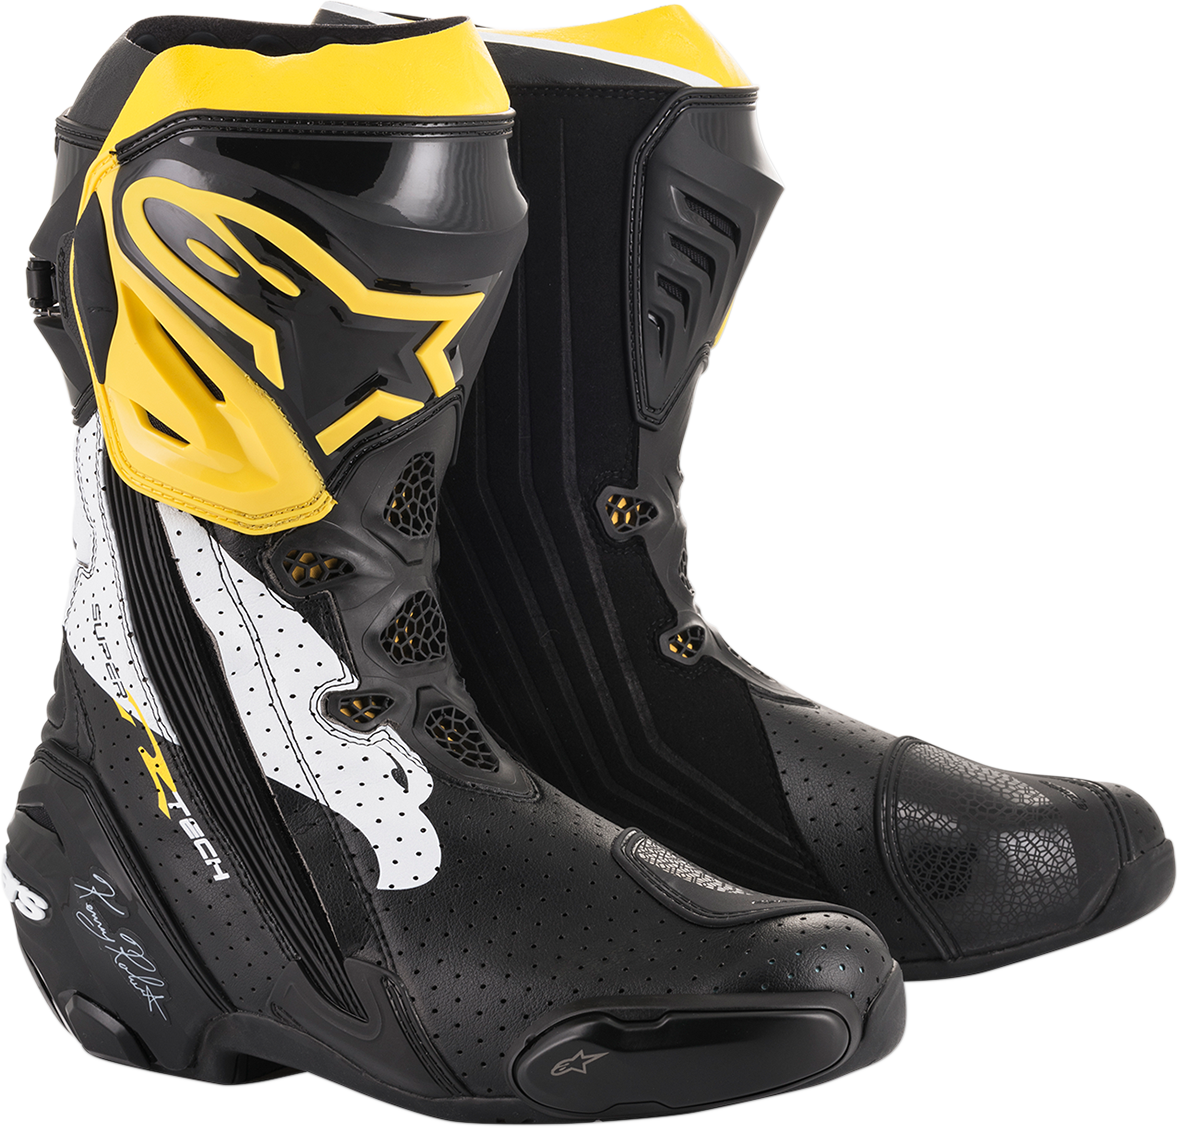 Alpinestars Limited Edition Kenny Roberts SR Supertech R Motorcycle Racing Boots